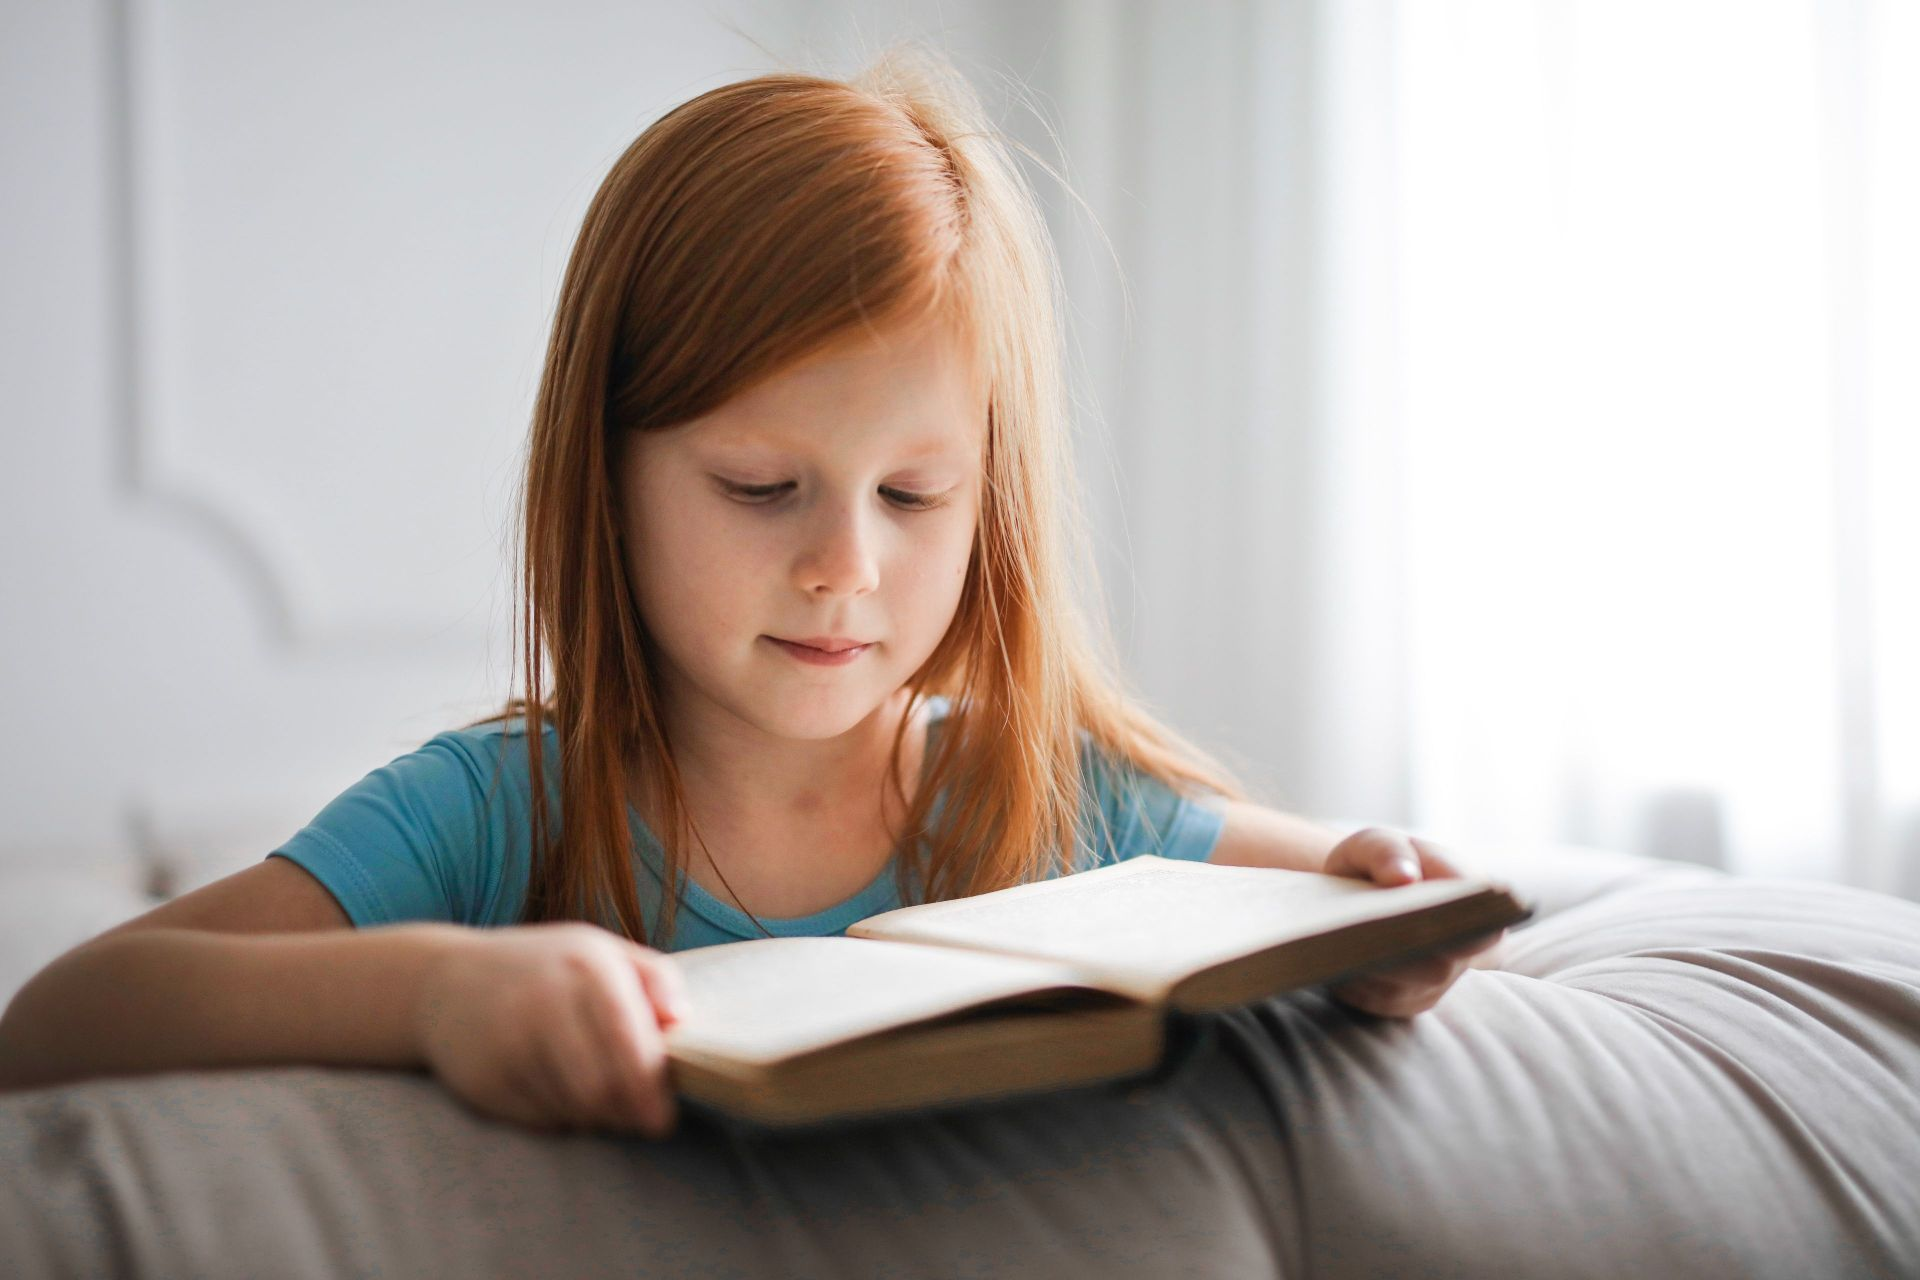 When Should Kids Learn to Read?